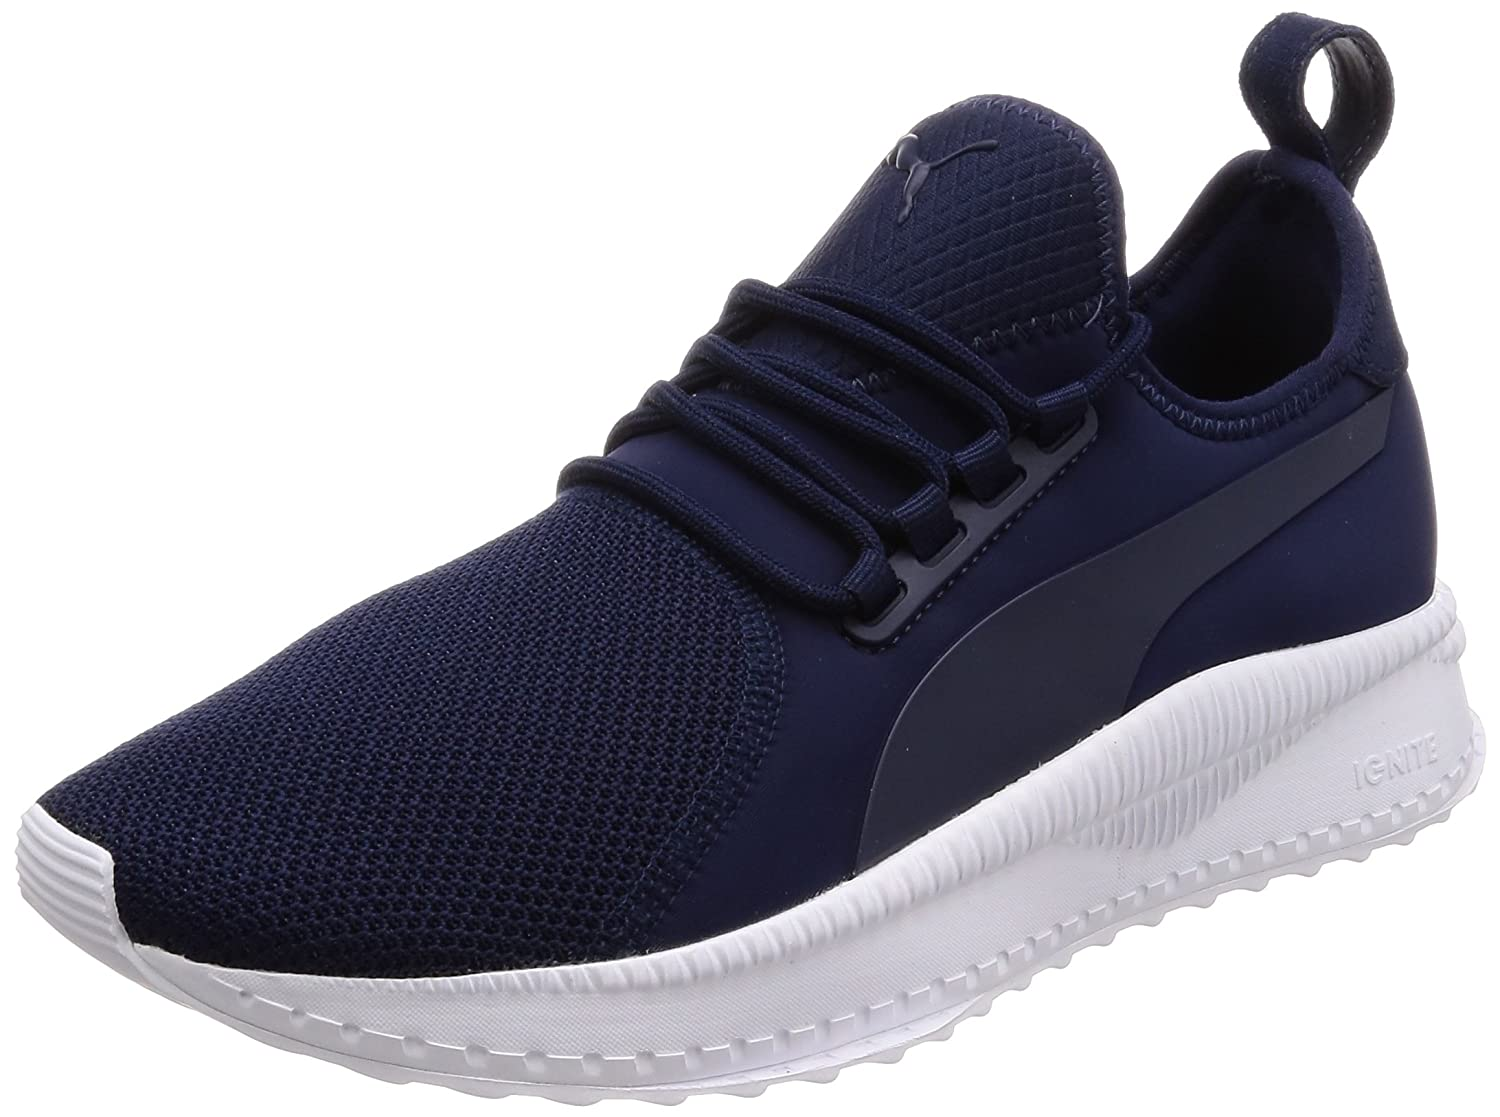 Puma Unisex Adults' Tsugi Apex Low-Top Sneakers 366090